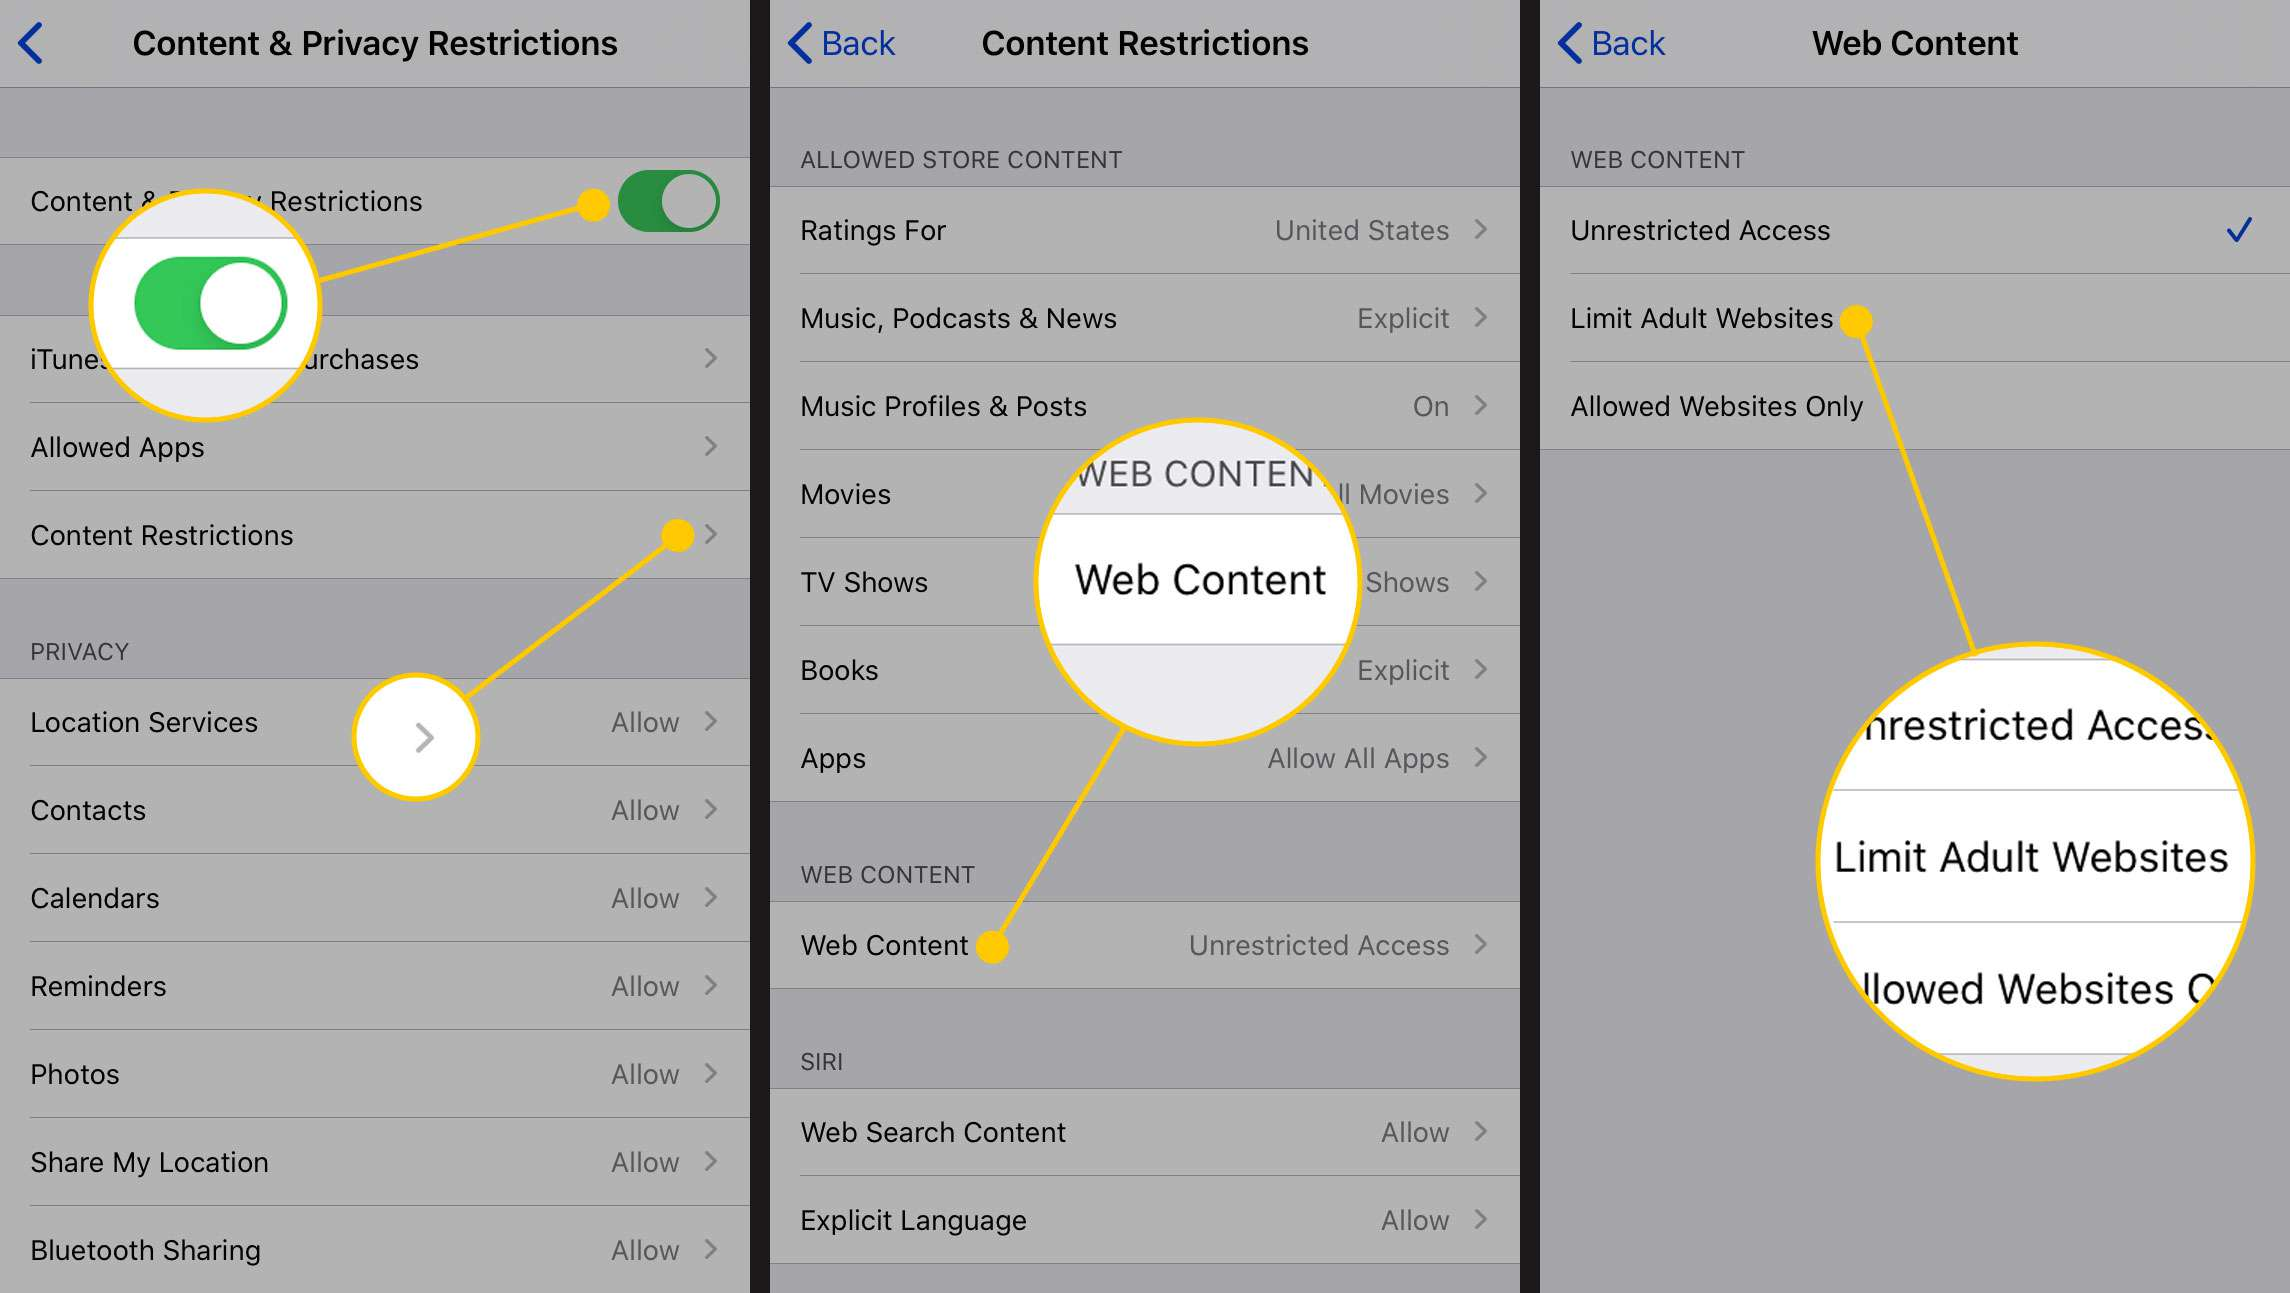 Content Restrictions, Web Content, and Limit Adult Websites options in iOS Settings